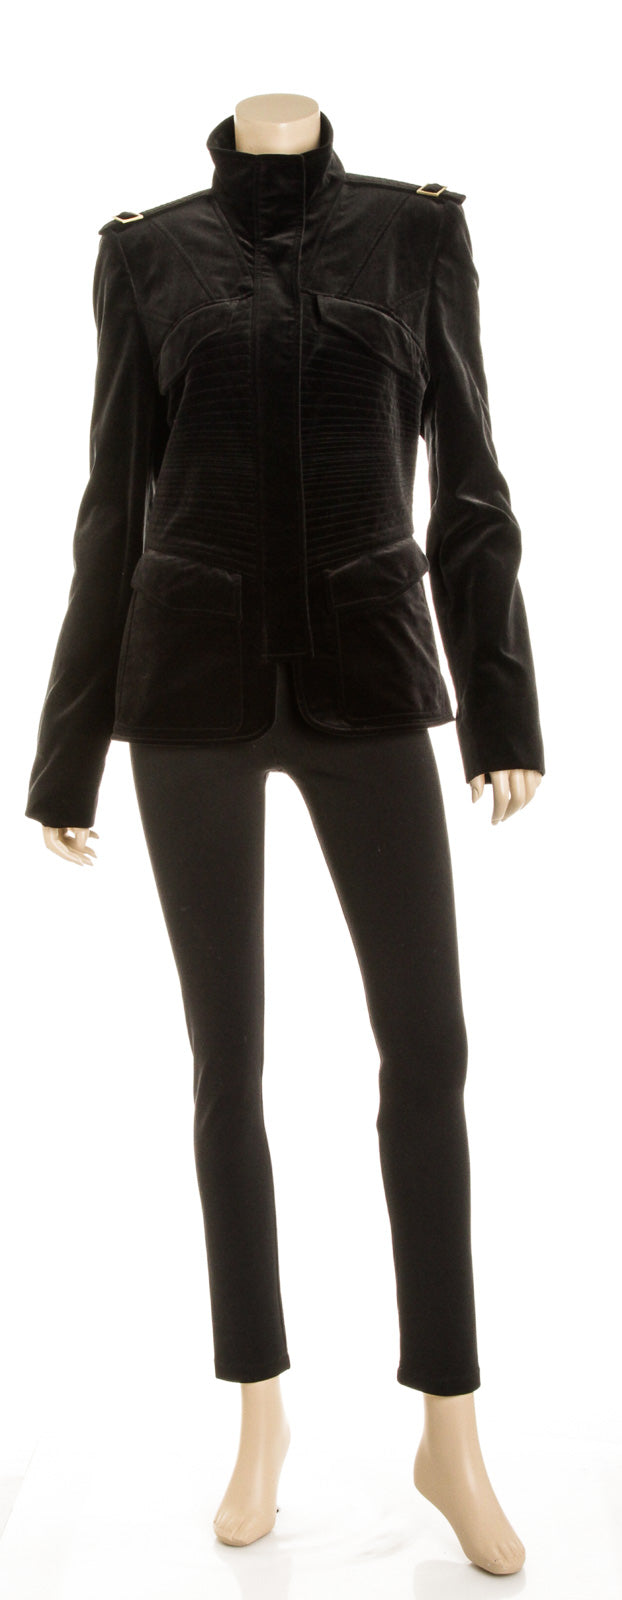 Gucci Black Velvet Jacket (Size 46)